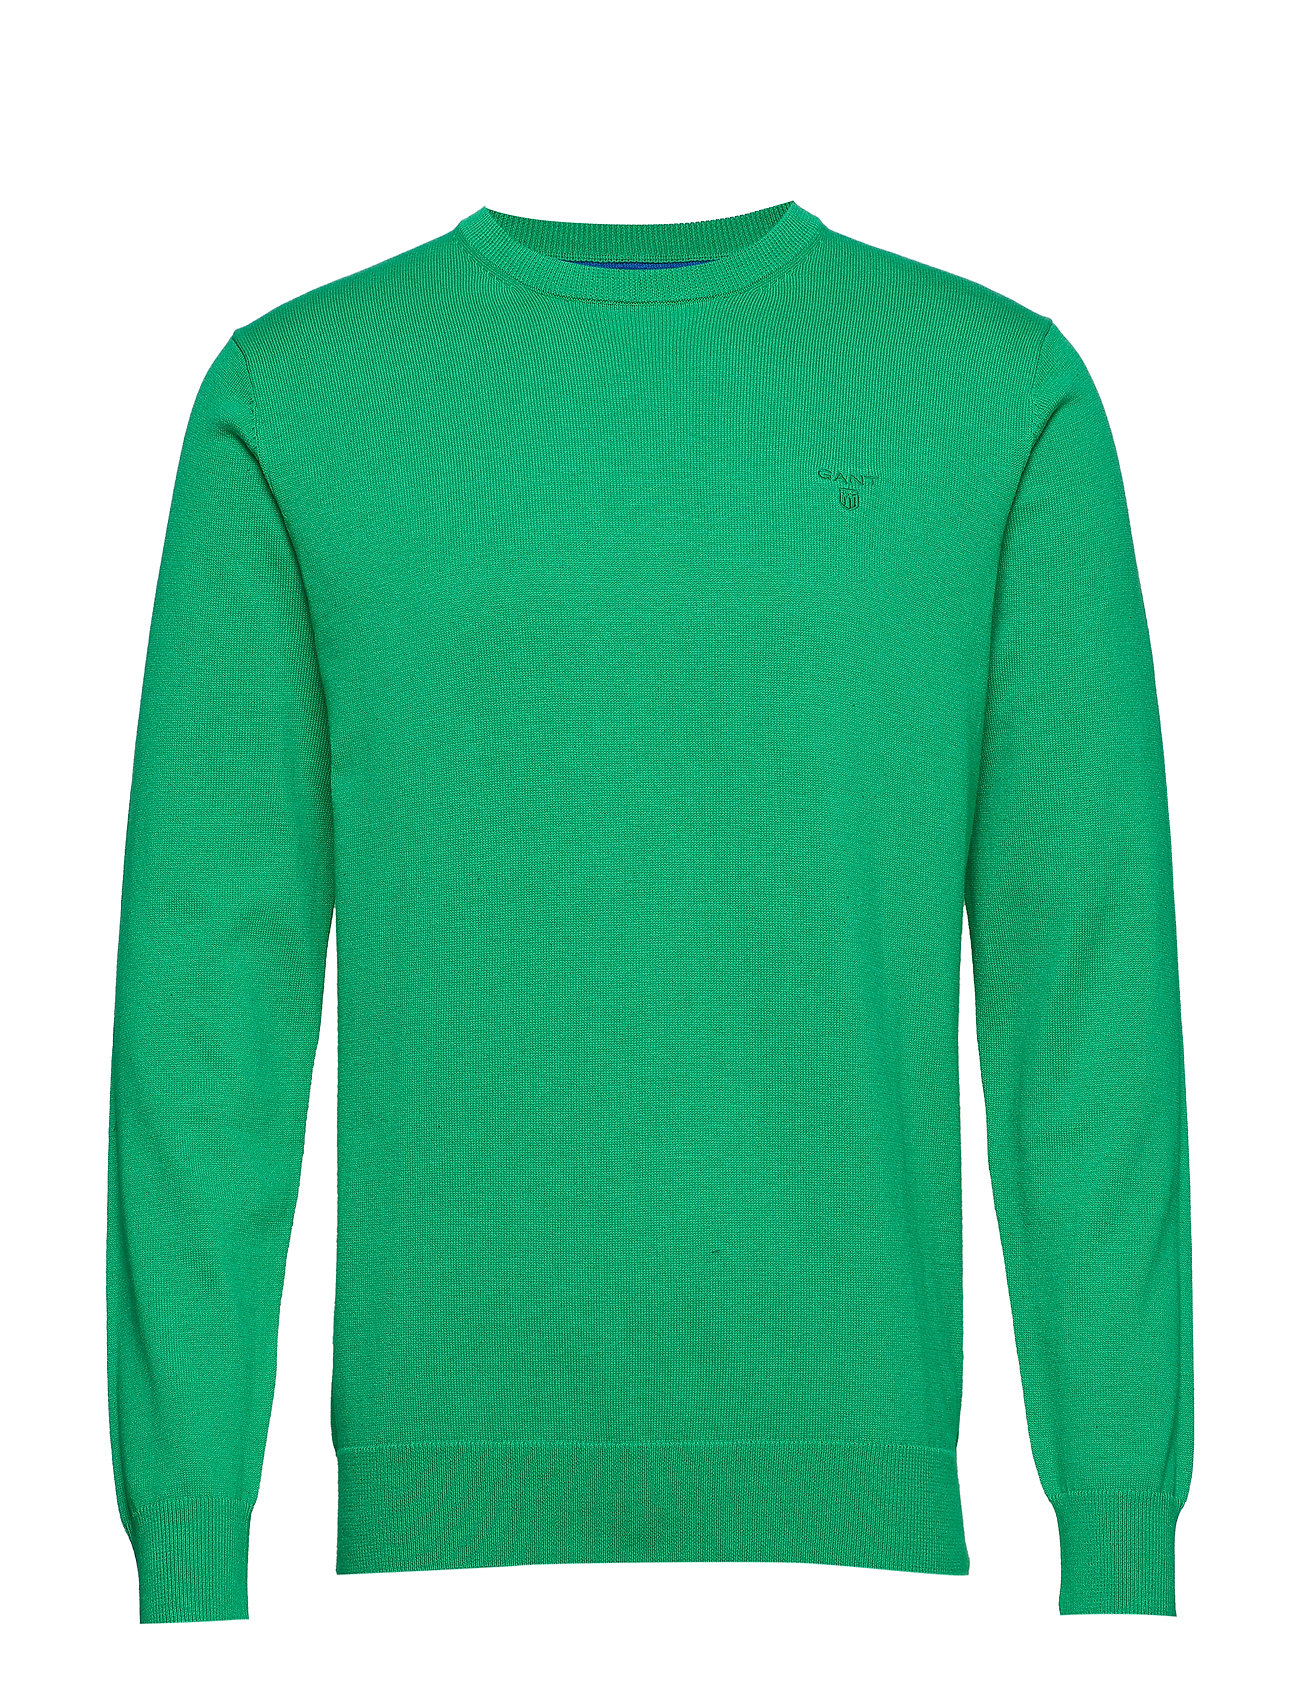 GANT LT. WEIGHT COTTON CREW - GREEN MELANGE